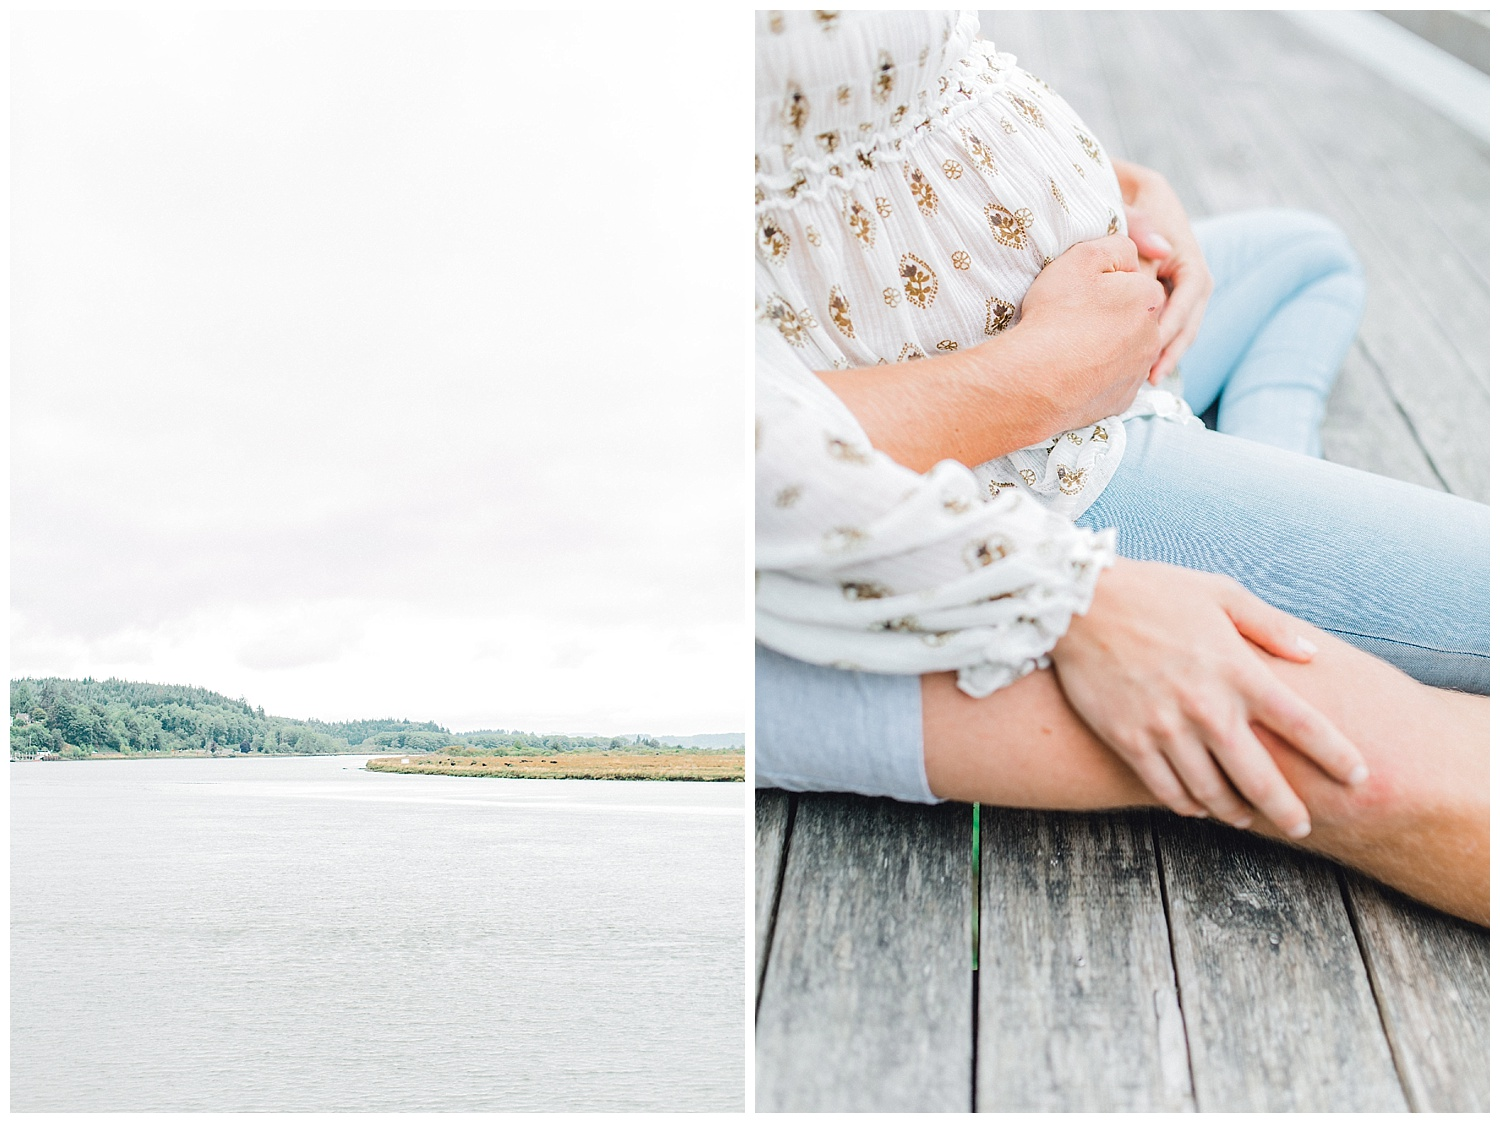 The Most Perfect In Home Maternity Lifestyle Photo Session | Pregnancy Goals | Emma Rose Company Seattle and Portland Wedding and Potrait Photographer | Dream Chasers Workshop_0004.jpg